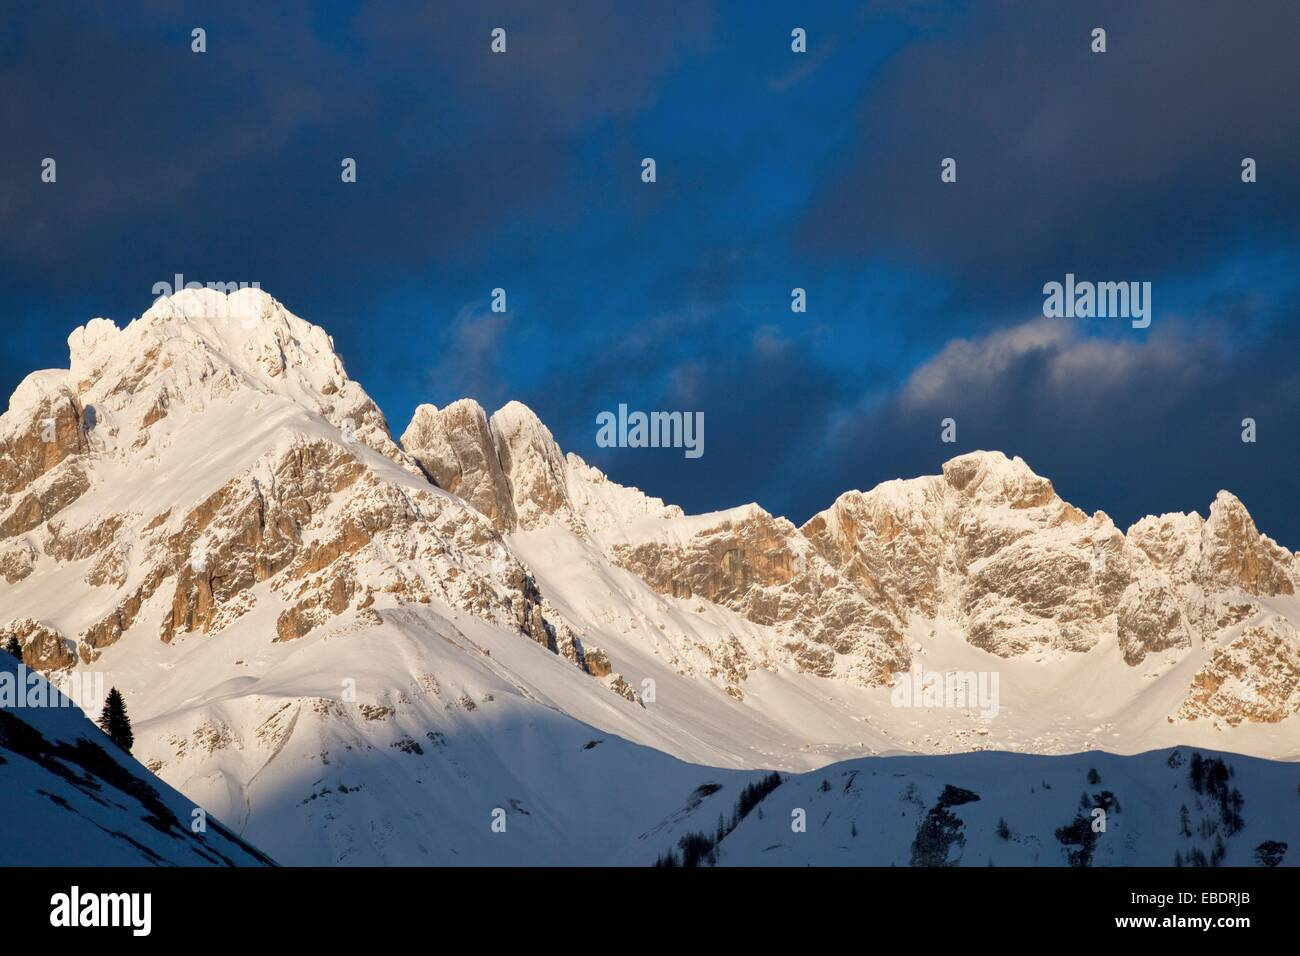 Mountains covered with snow near Fuciade hut at sunset, San Pellegrino pass, Trentino Alto Adige, Italy, Europe Stock Photo